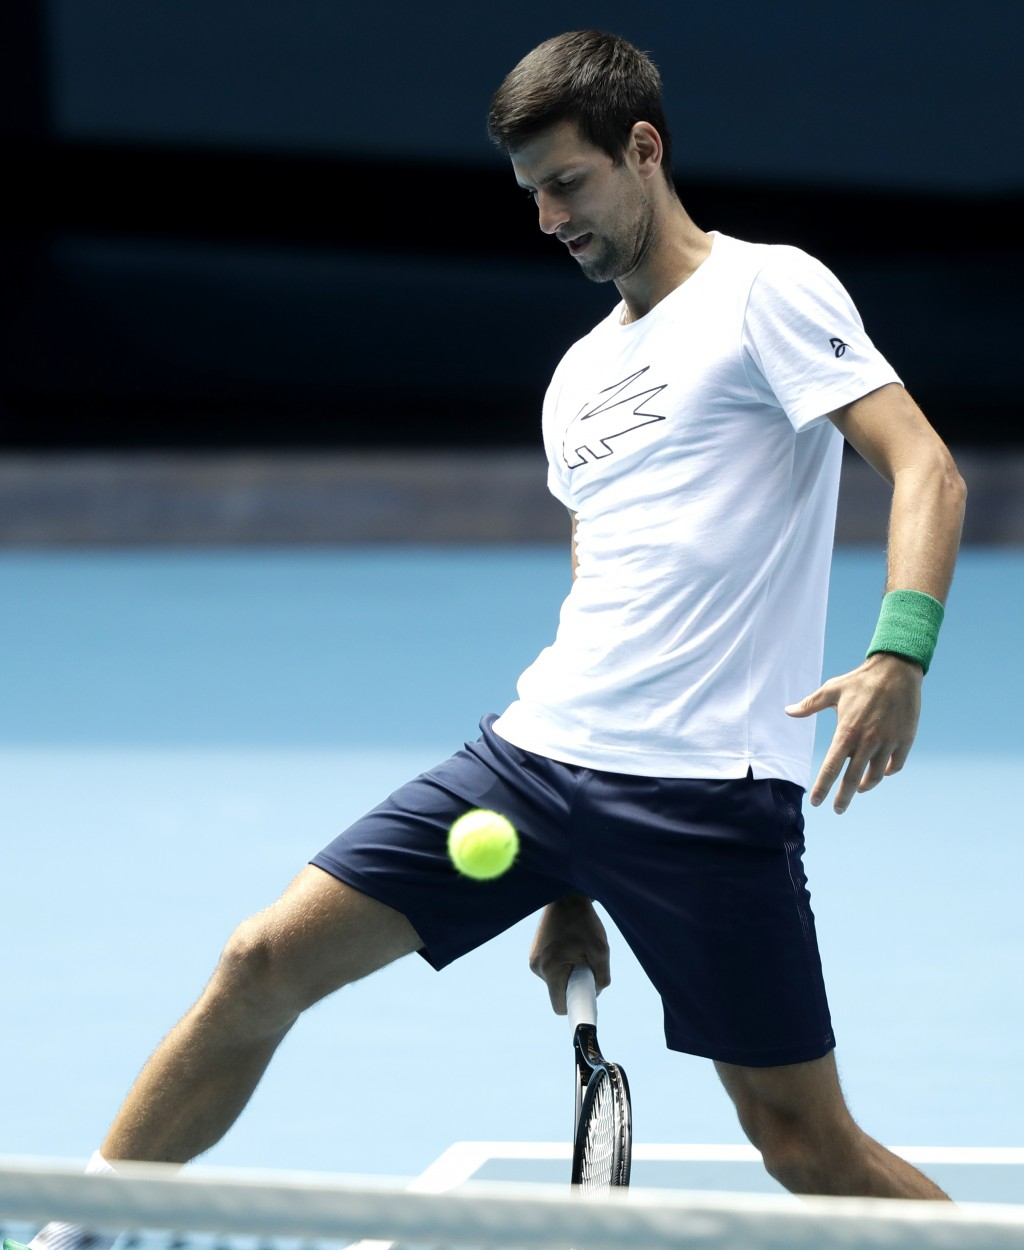 Serbia's Novak Djokovic hits the ball during a practice session on Rod laver Arena ahead of the Australian Open tennis championship in Melbourne, Aust...